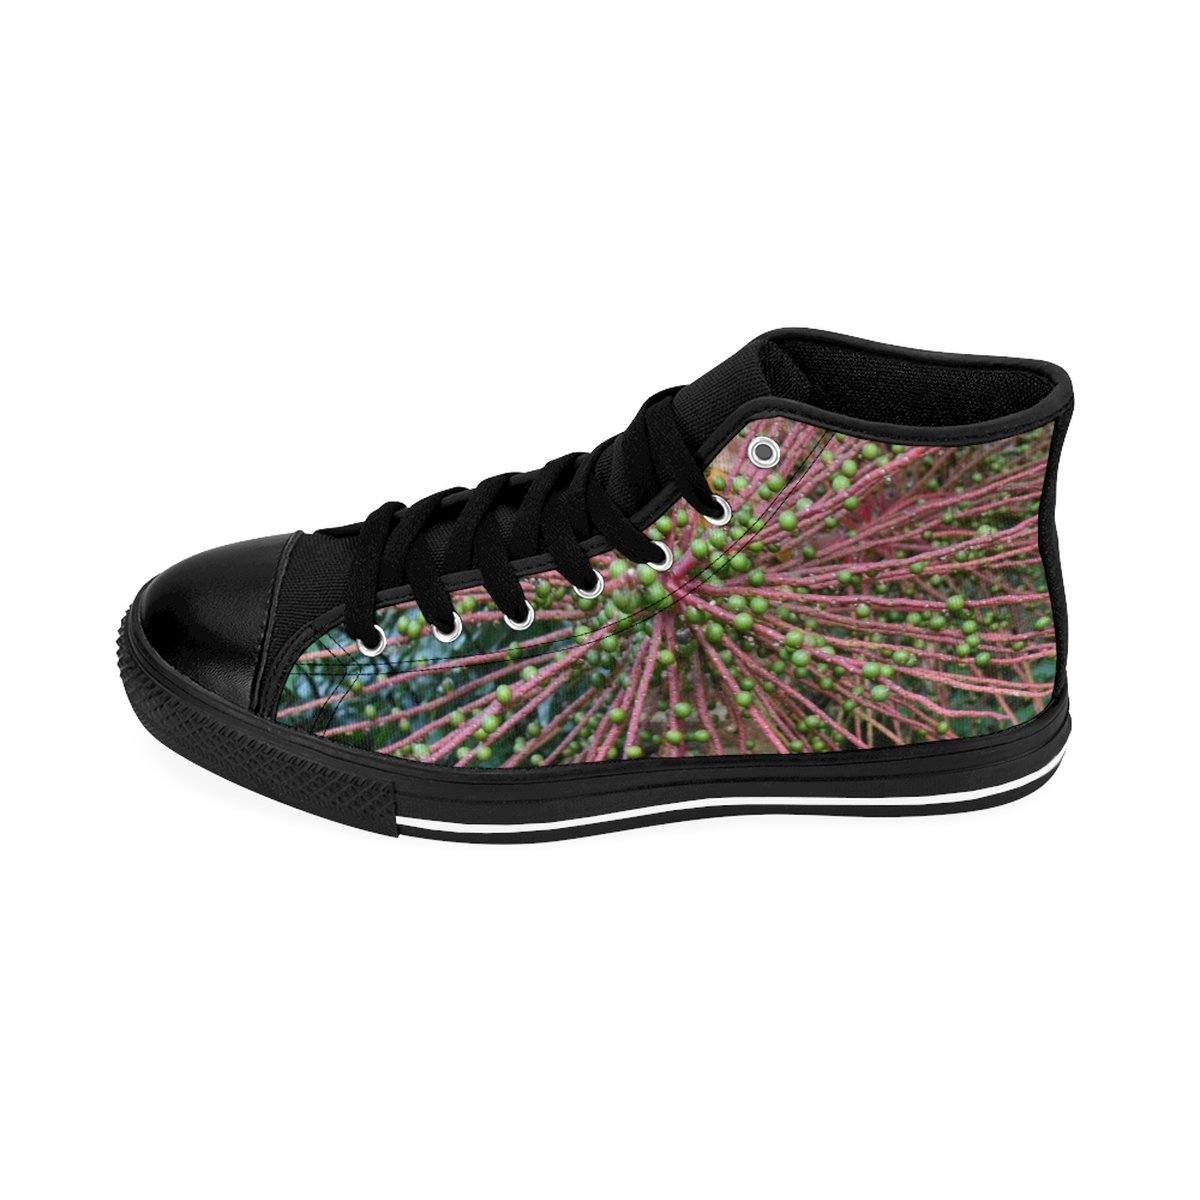 Women's High-top Sneakers - Seeds of the Sierra Palm - El Yunque rain forest PR Shoes Printify